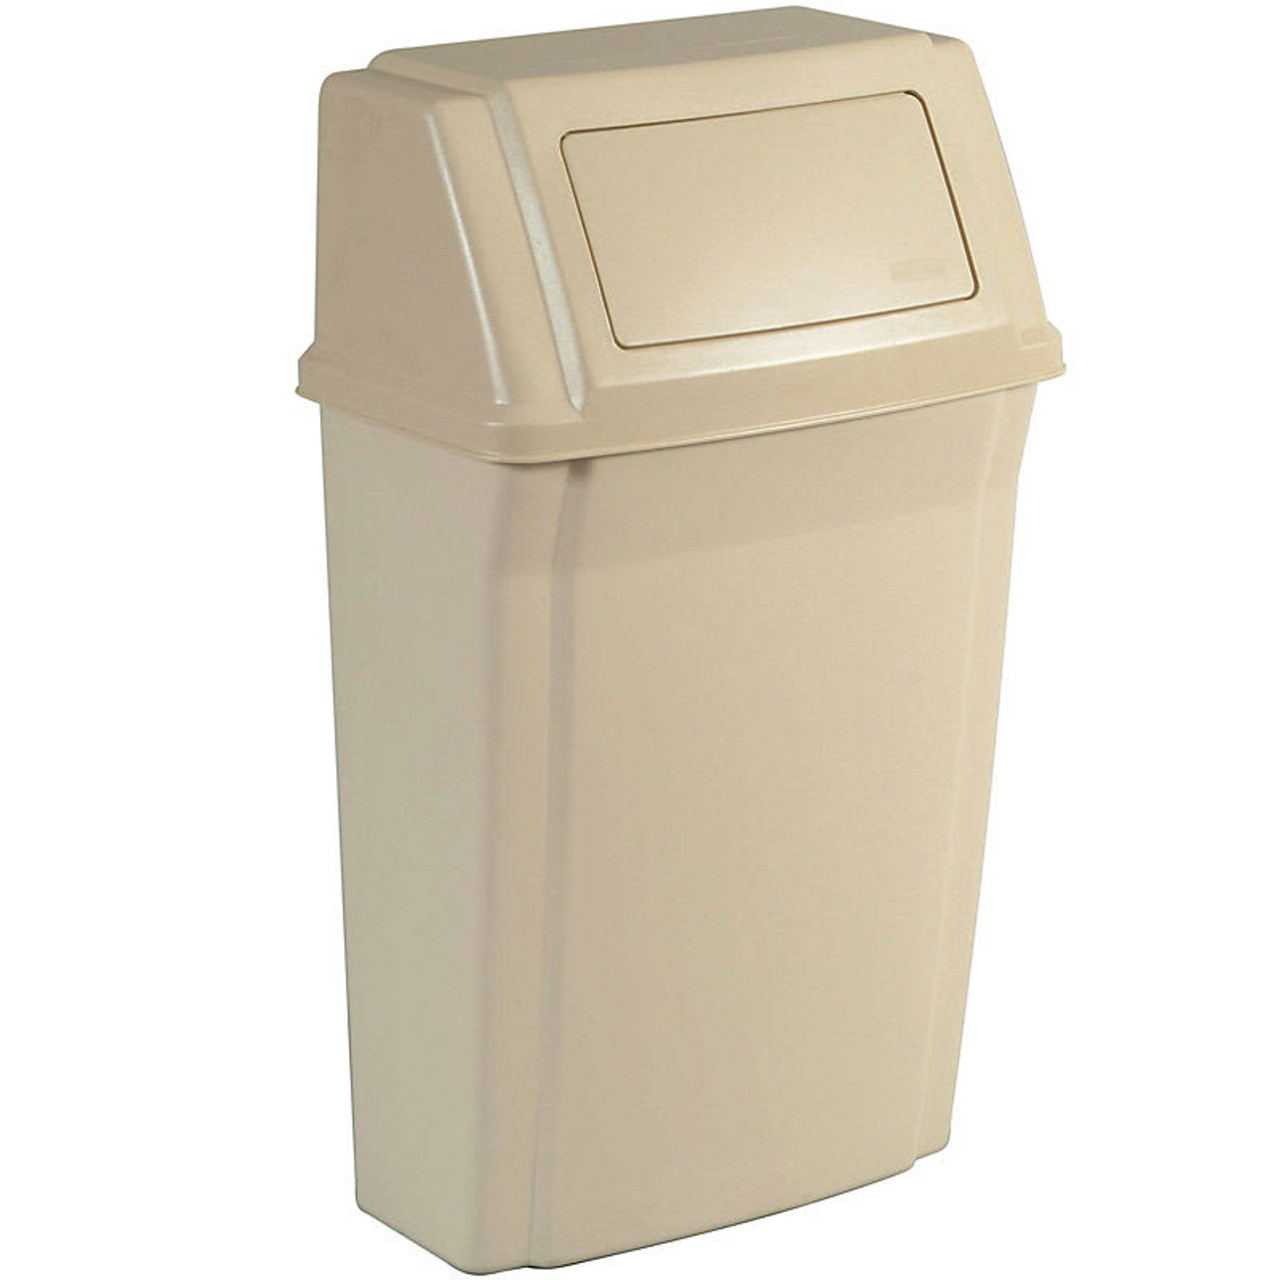 Rubbermaid Slim Jim Wall-Mounted Container 56.8 L